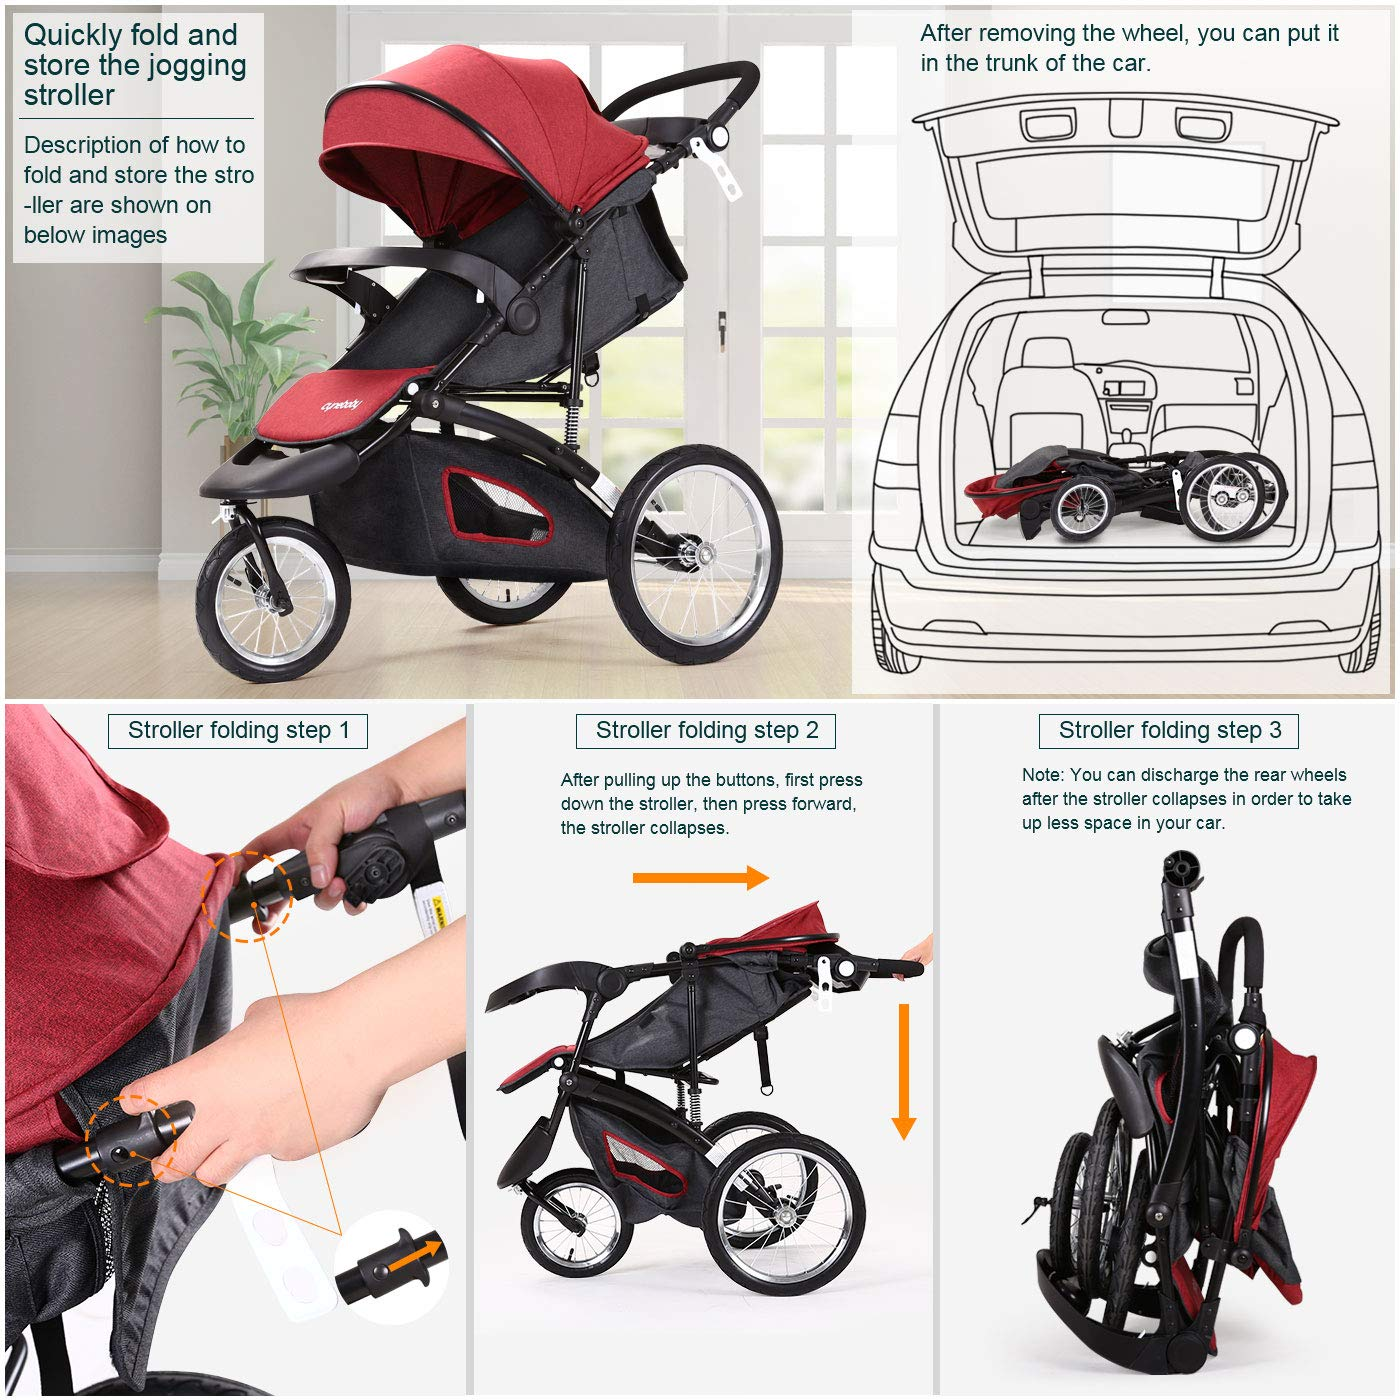 Jogging Stroller Fold City Baby Jogger Travel Citi Jog Strollers Single Toddler Baby Pram Jogging Compact Urban Ultralight Joggers Beby Carriage Pushchair Stroller Travel System by Cynebaby / HAIXIAO (Image #7)